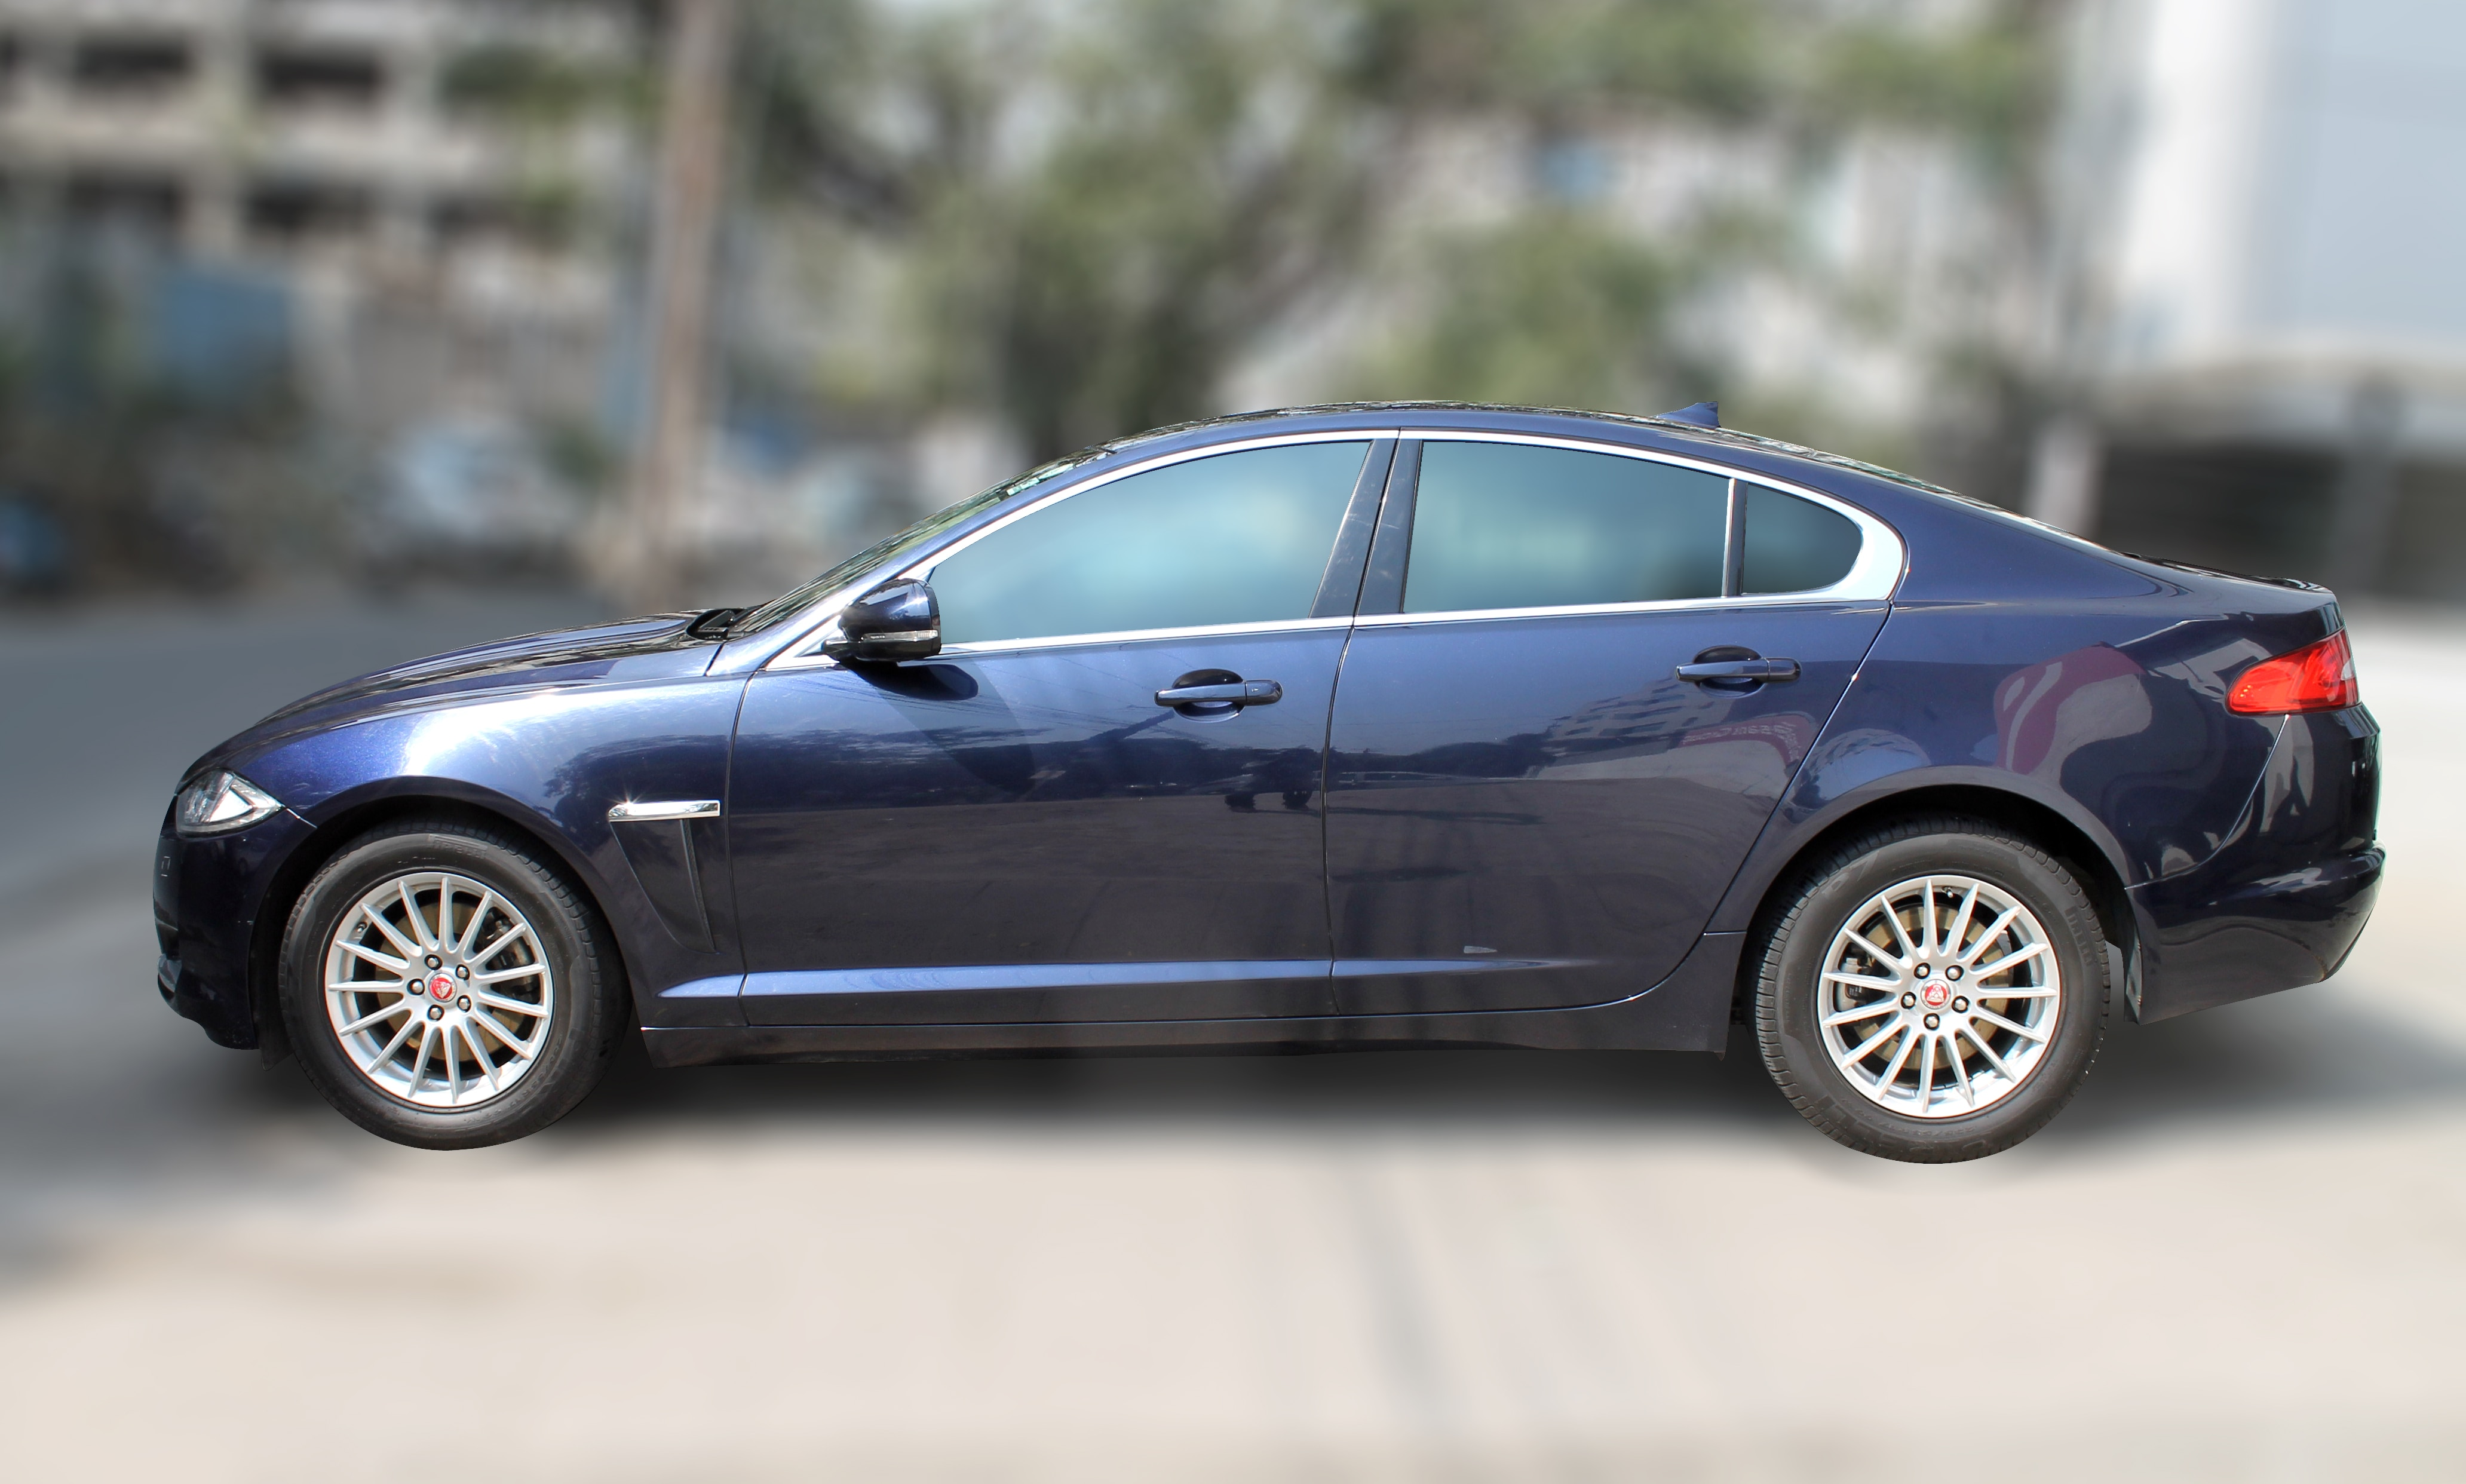 JAGUAR XF 2.2L ( BLUE COLOR, DIESEL), 2015 model done only 29, 000km in absolute mint condition. For further info call 7569696666